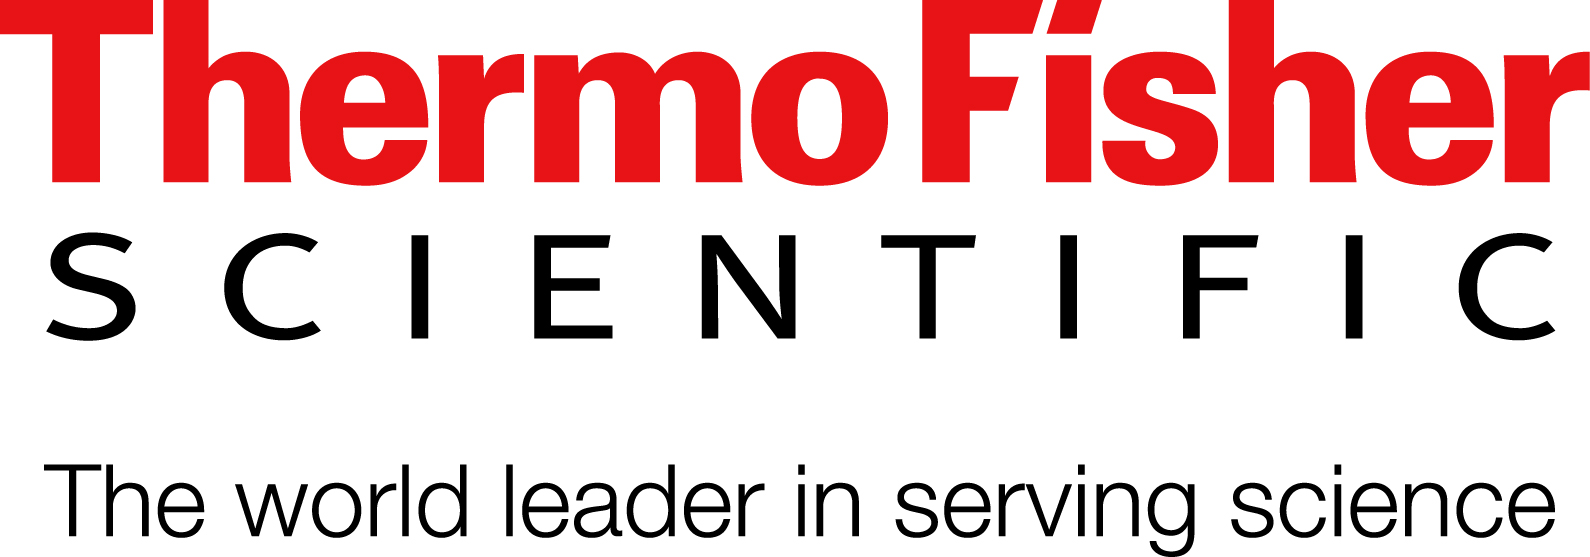 logo_Thermo Fisher Scientific - 2019.jpg